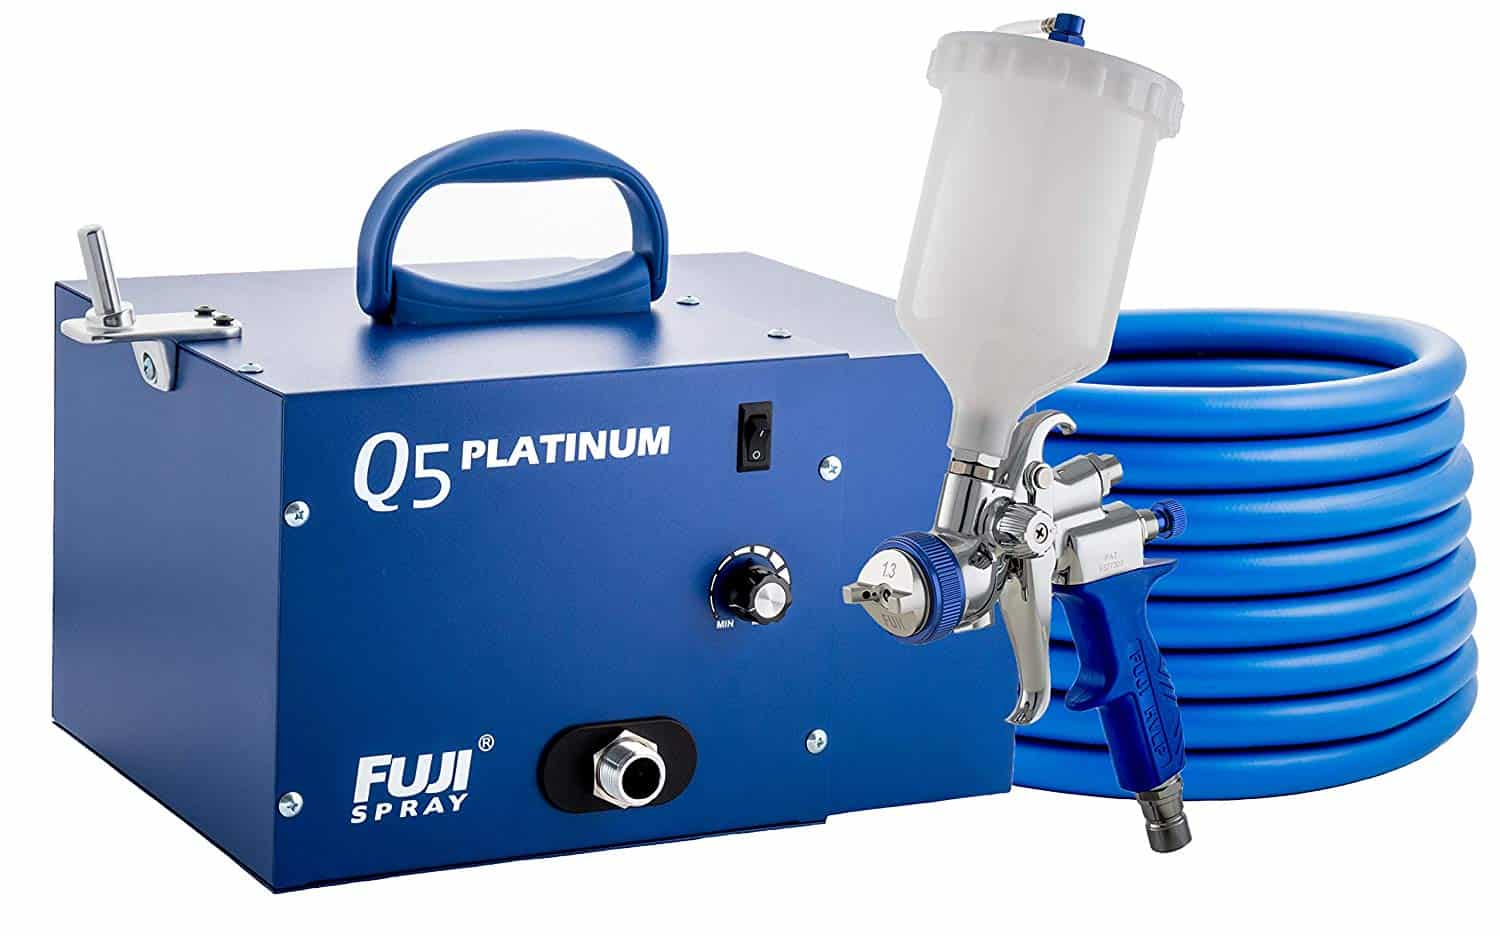 fuji q5 platinum review